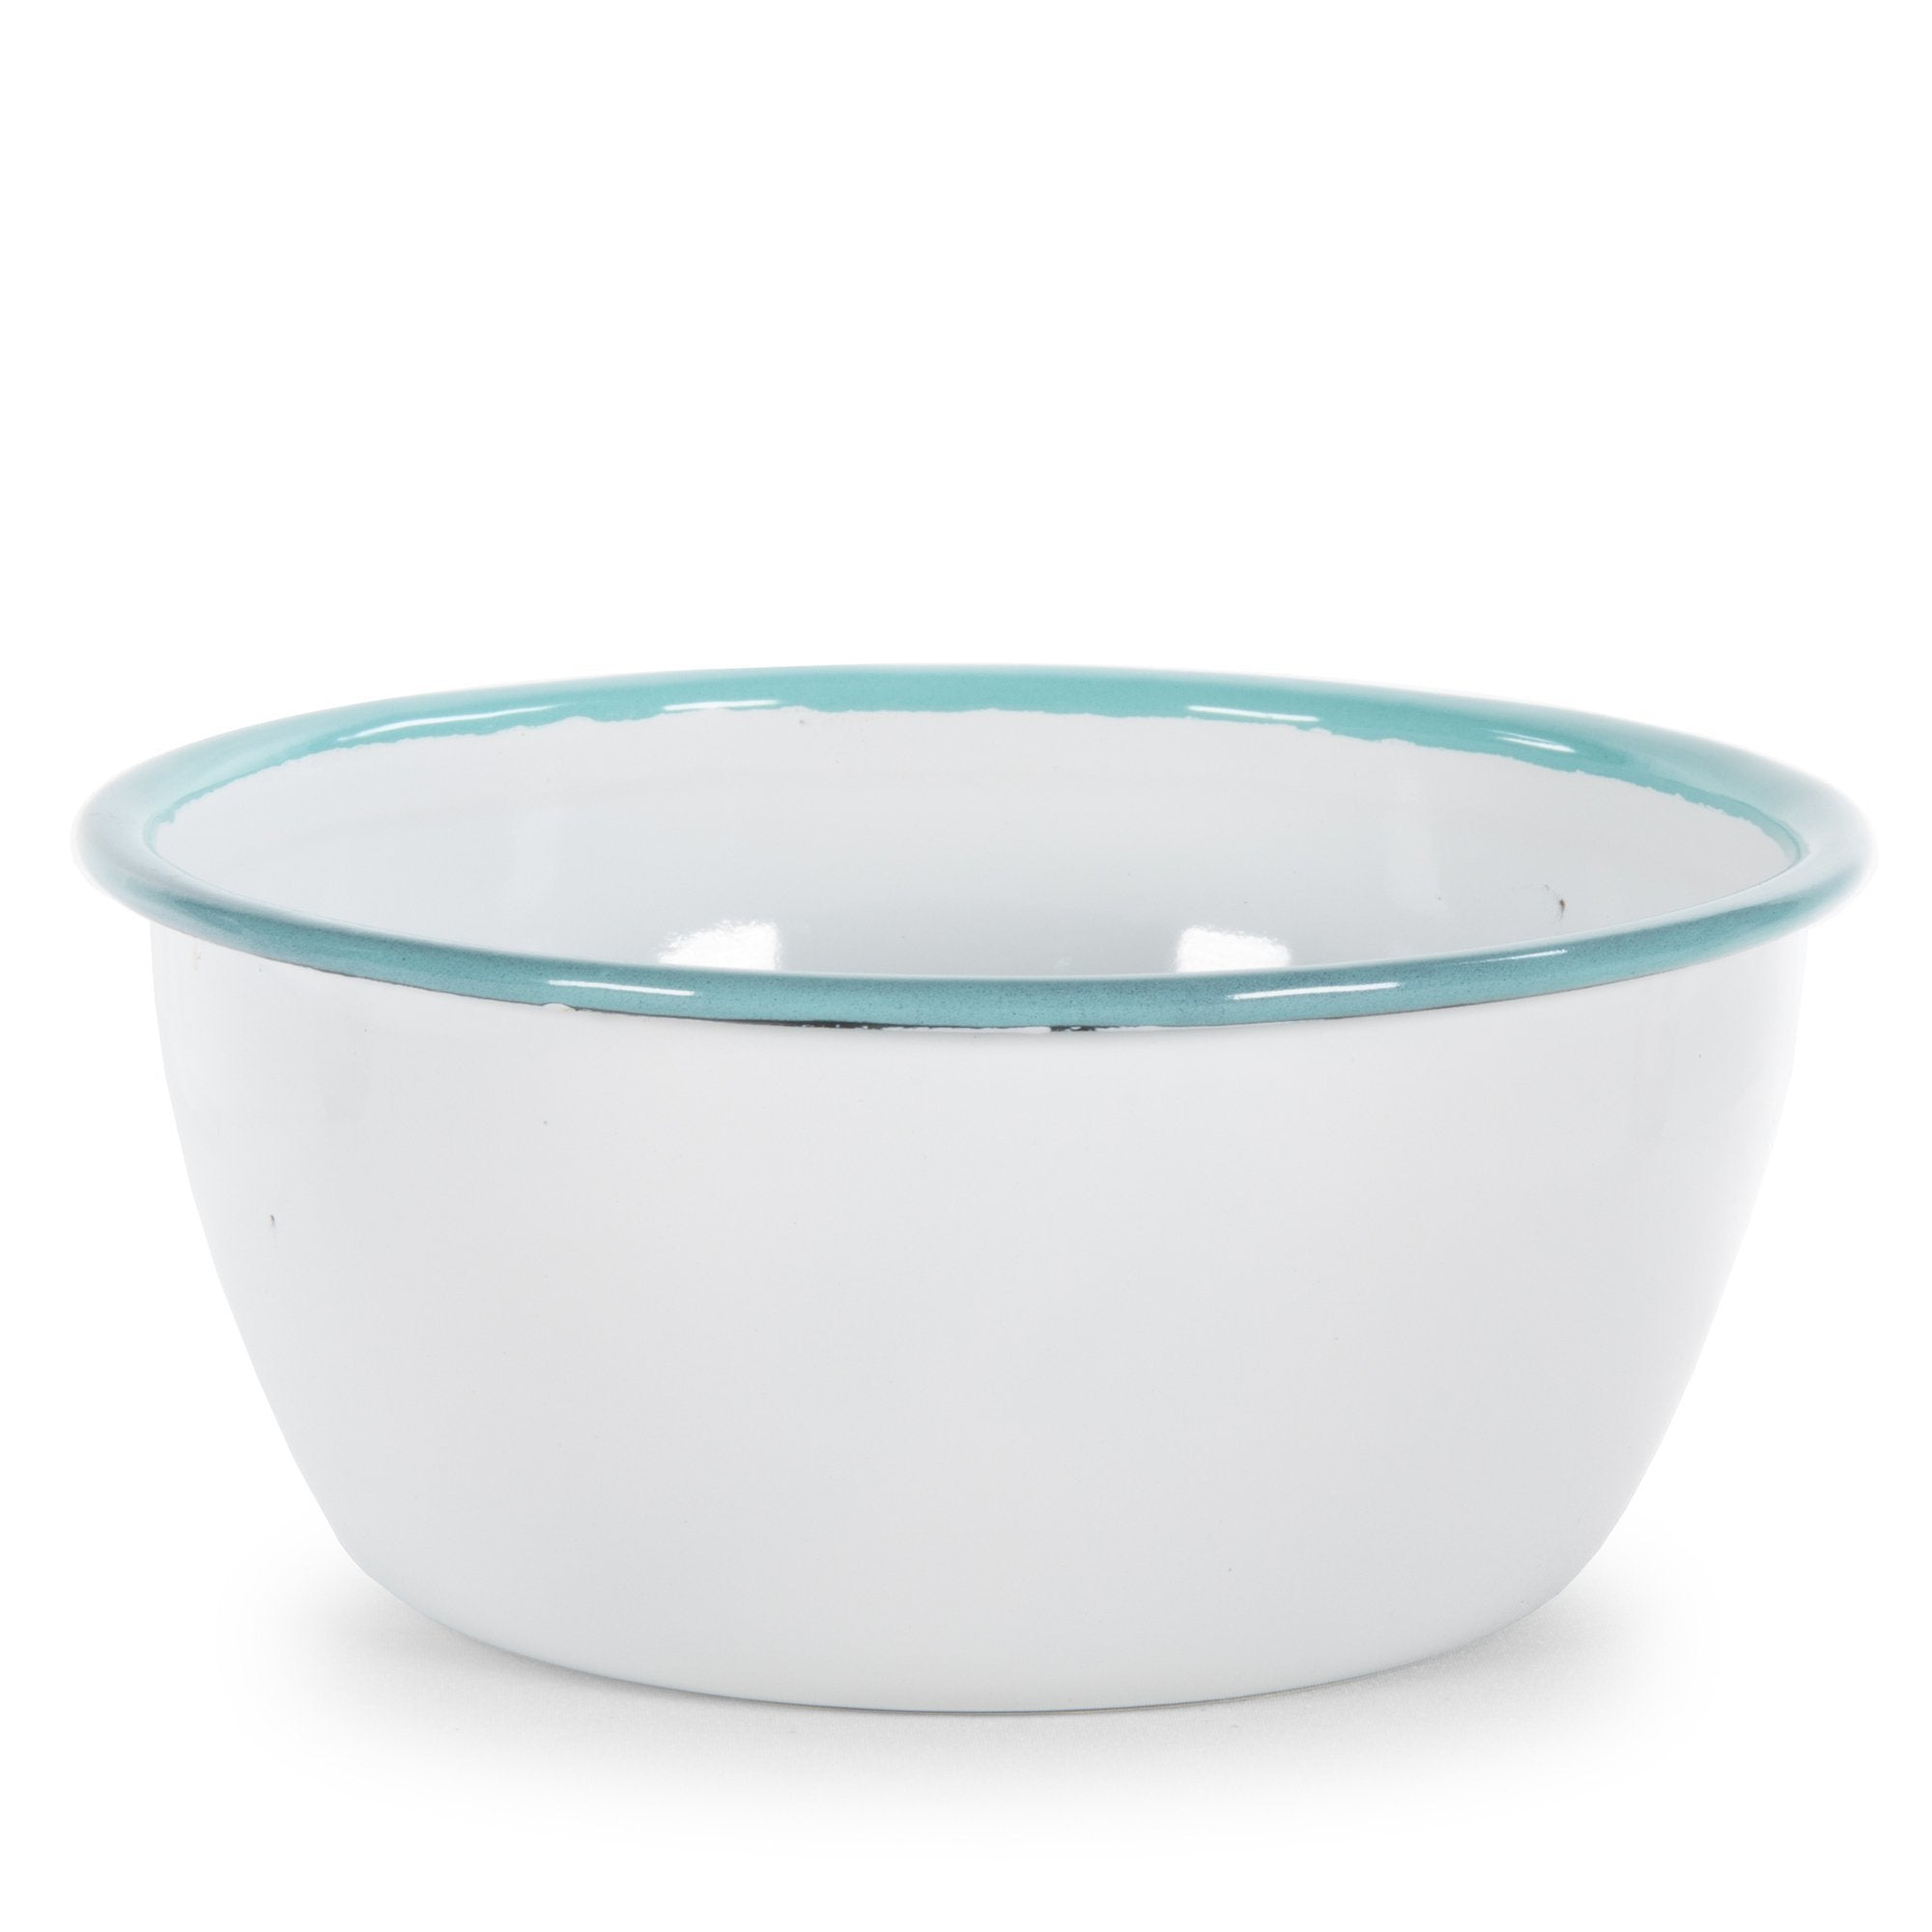 RGW93 - Glampware Bowls - White with Sea Glass Trim - Set of 4